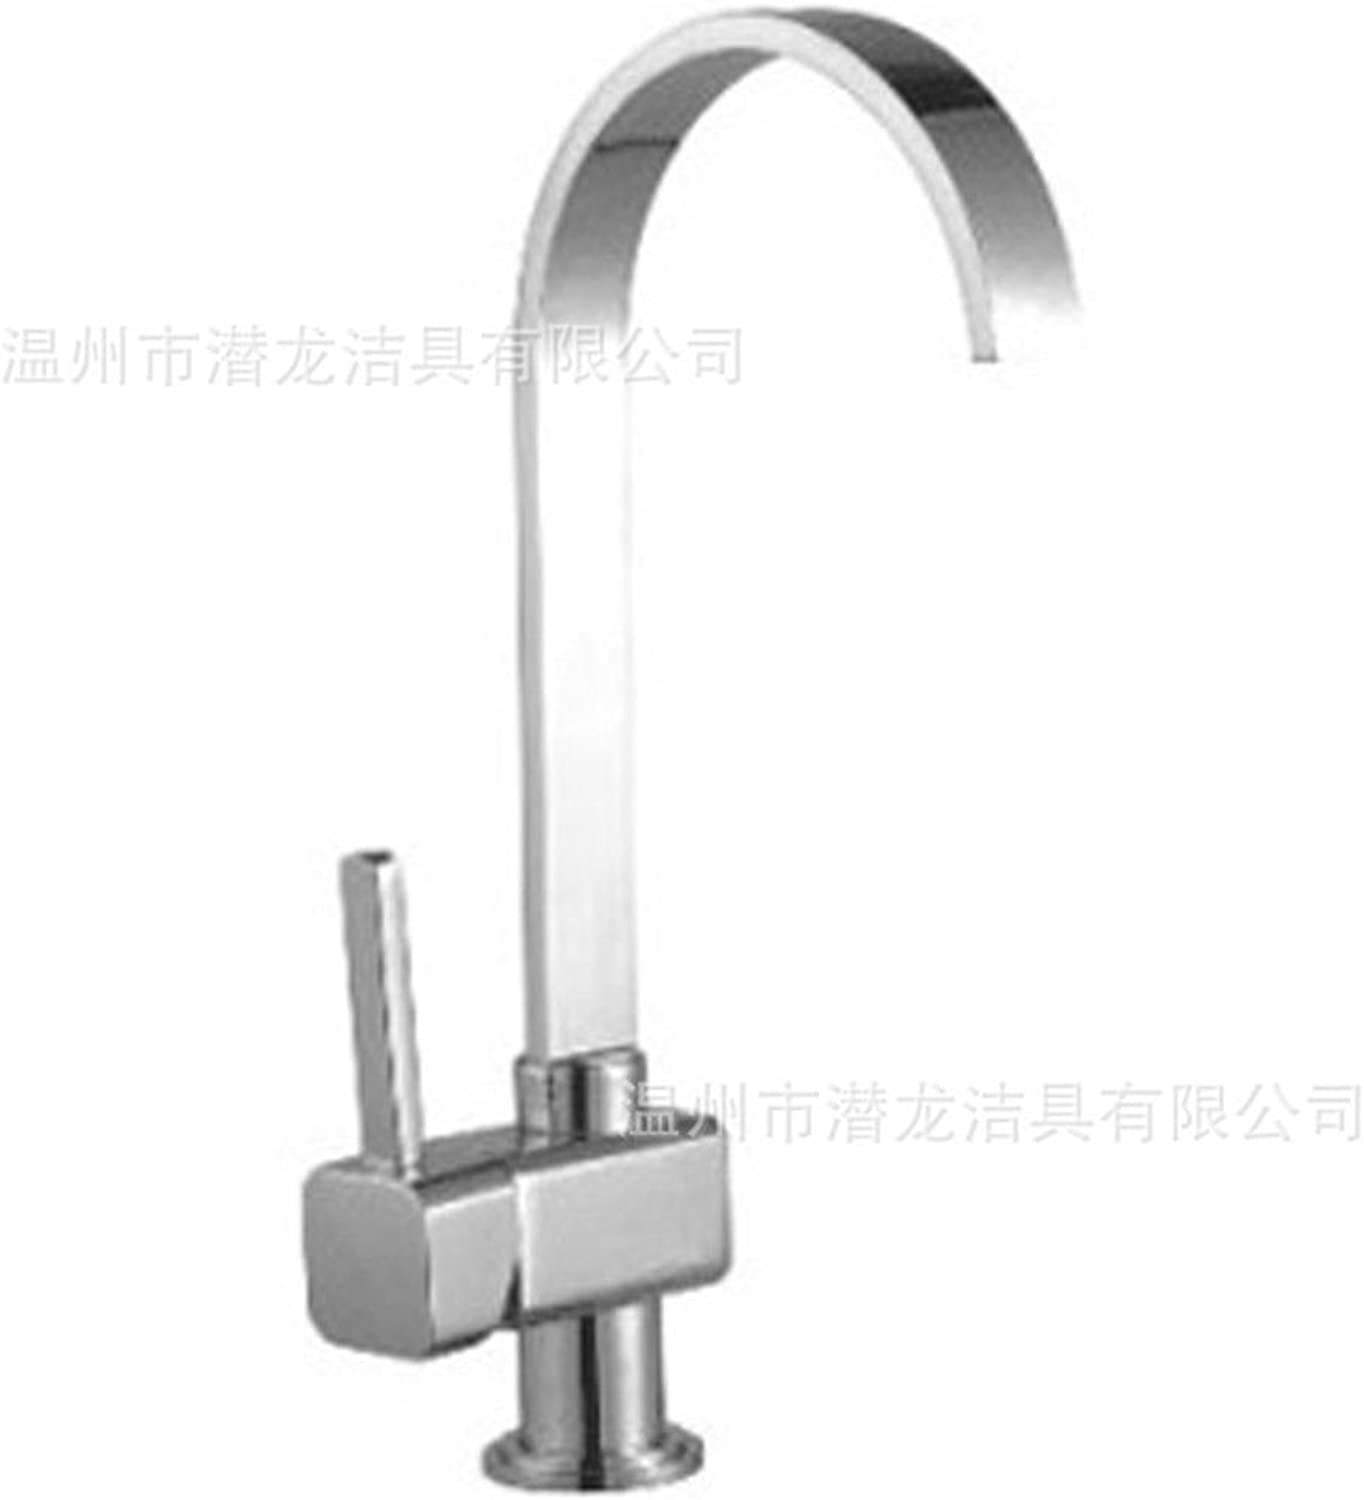 Commercial Single Lever Pull Down Kitchen Sink Faucet Brass Constructed Polished Modern Quartet greenical Kitchen Faucet Mixing Hot and Cold Water Basin Basin Faucet